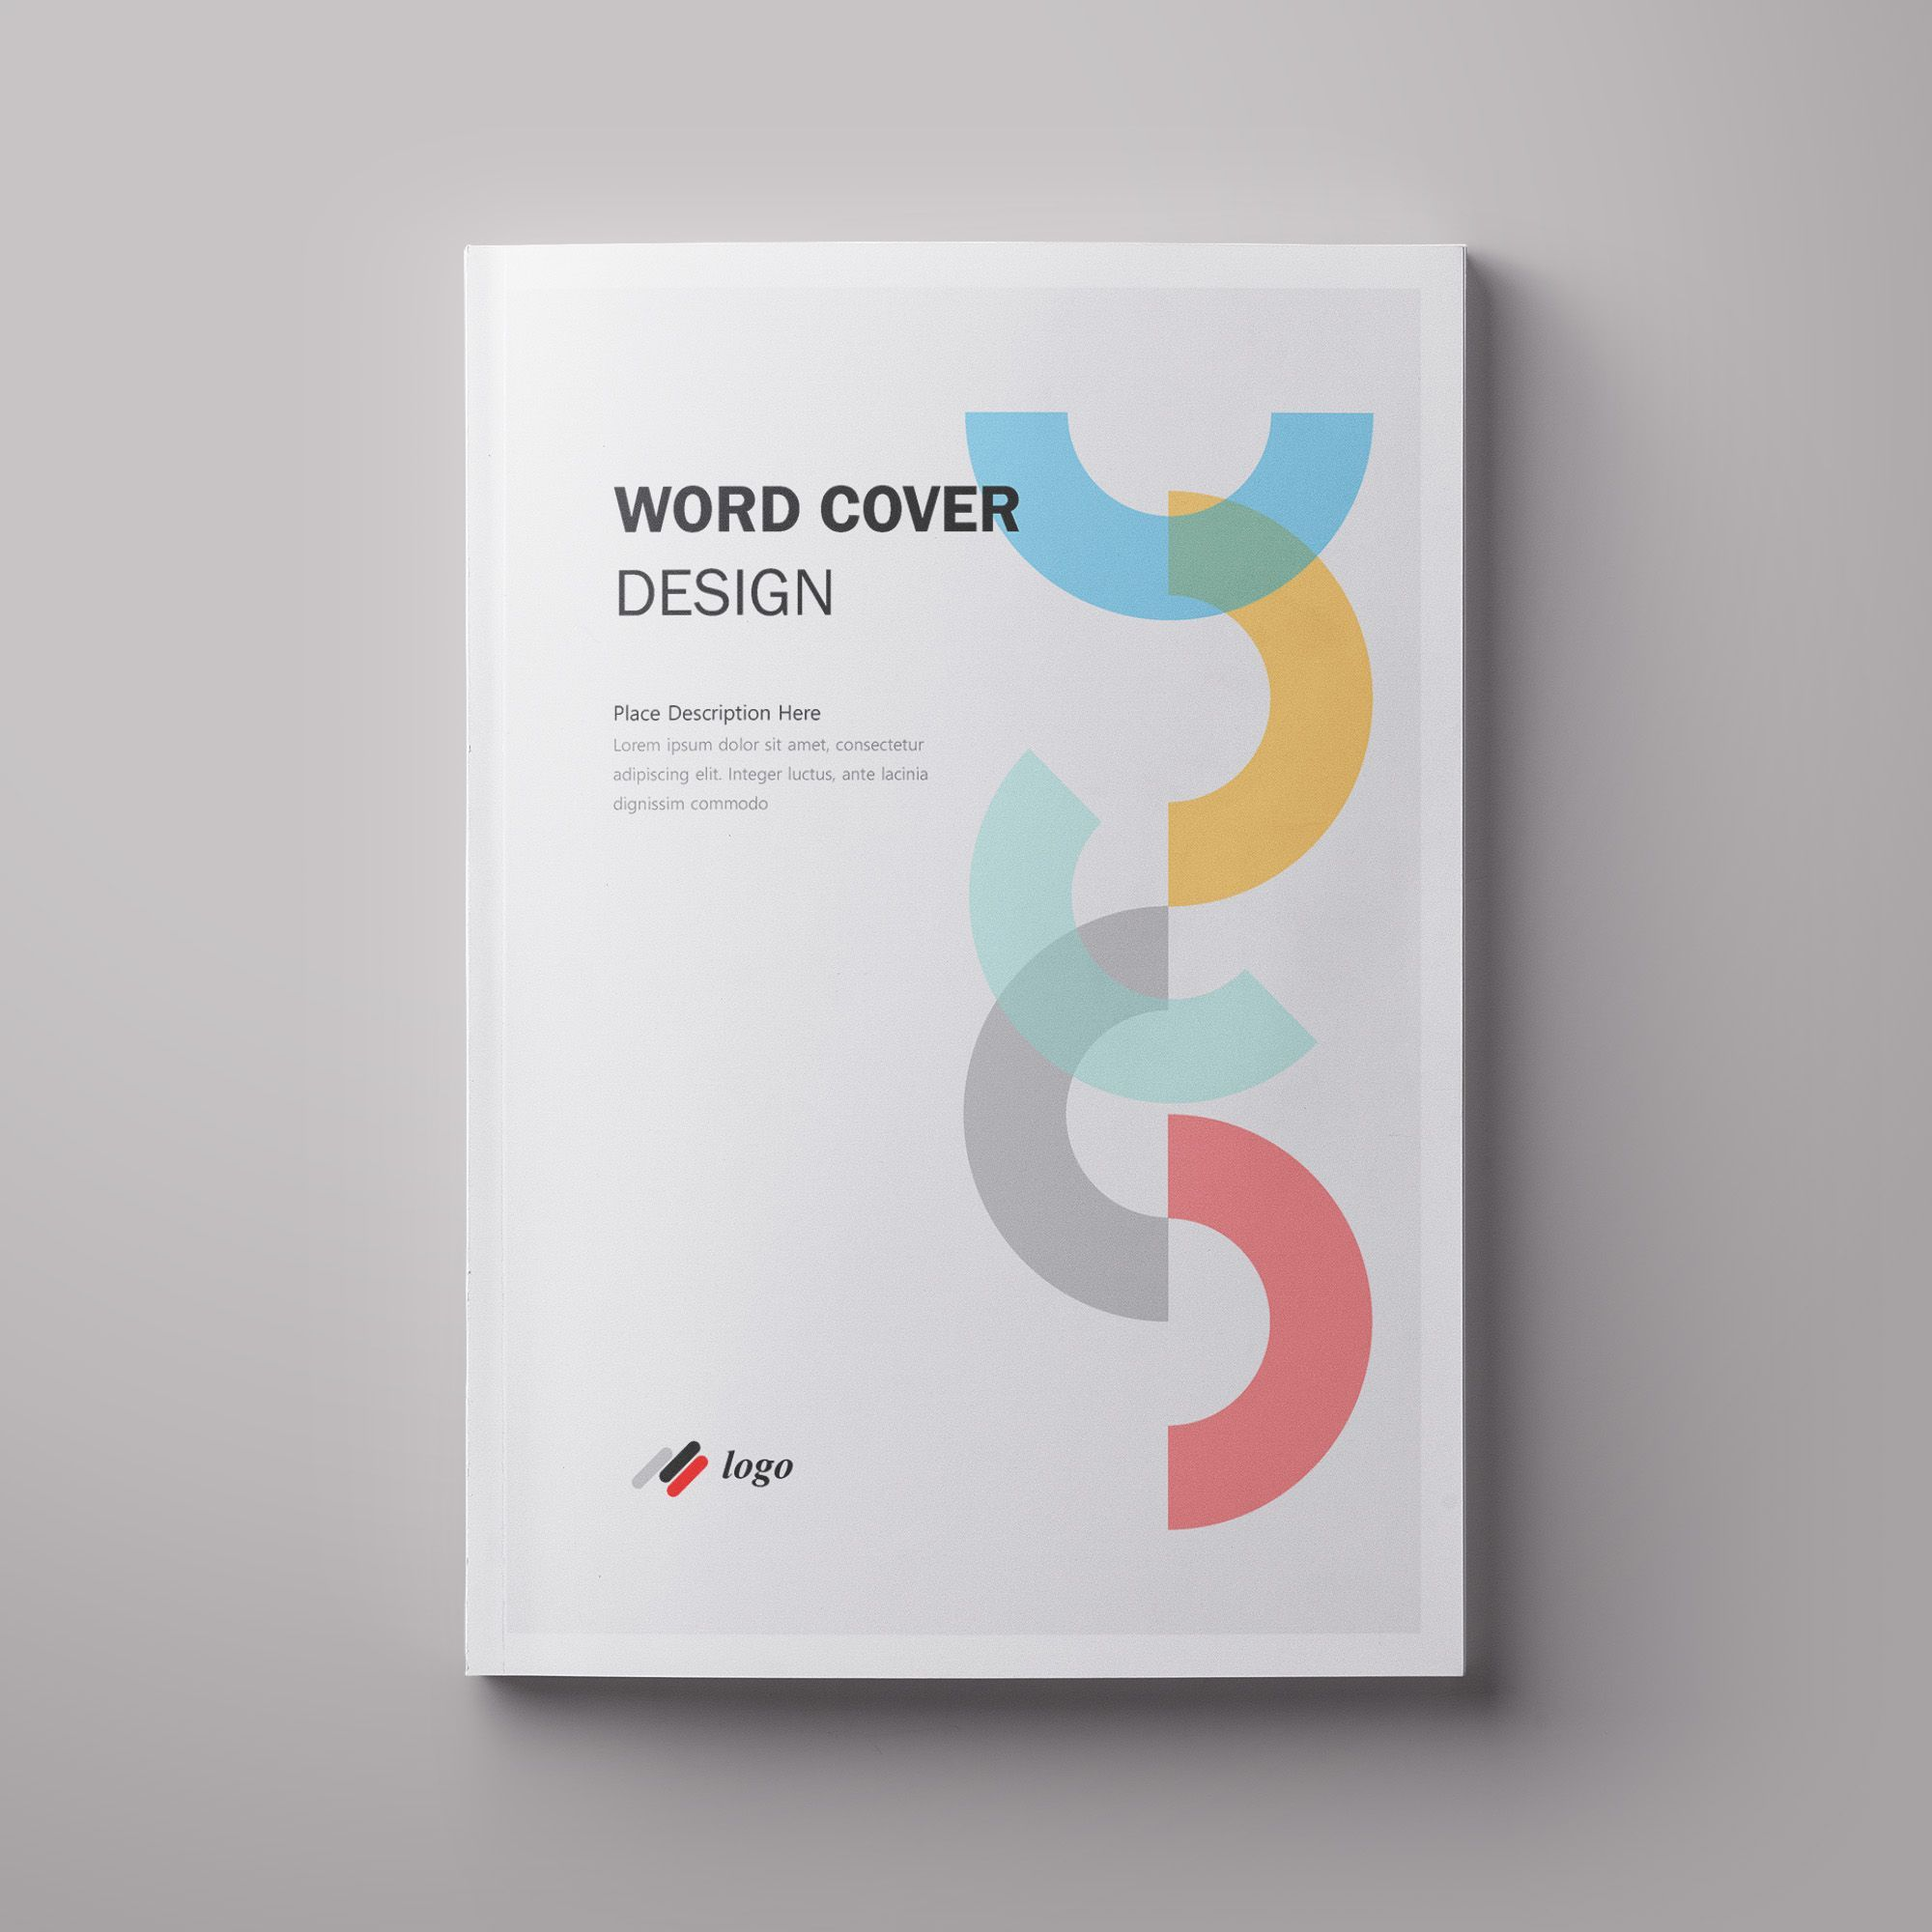 000 Incredible Book Front Page Design Template Free Download Concept  Cover PsdFull